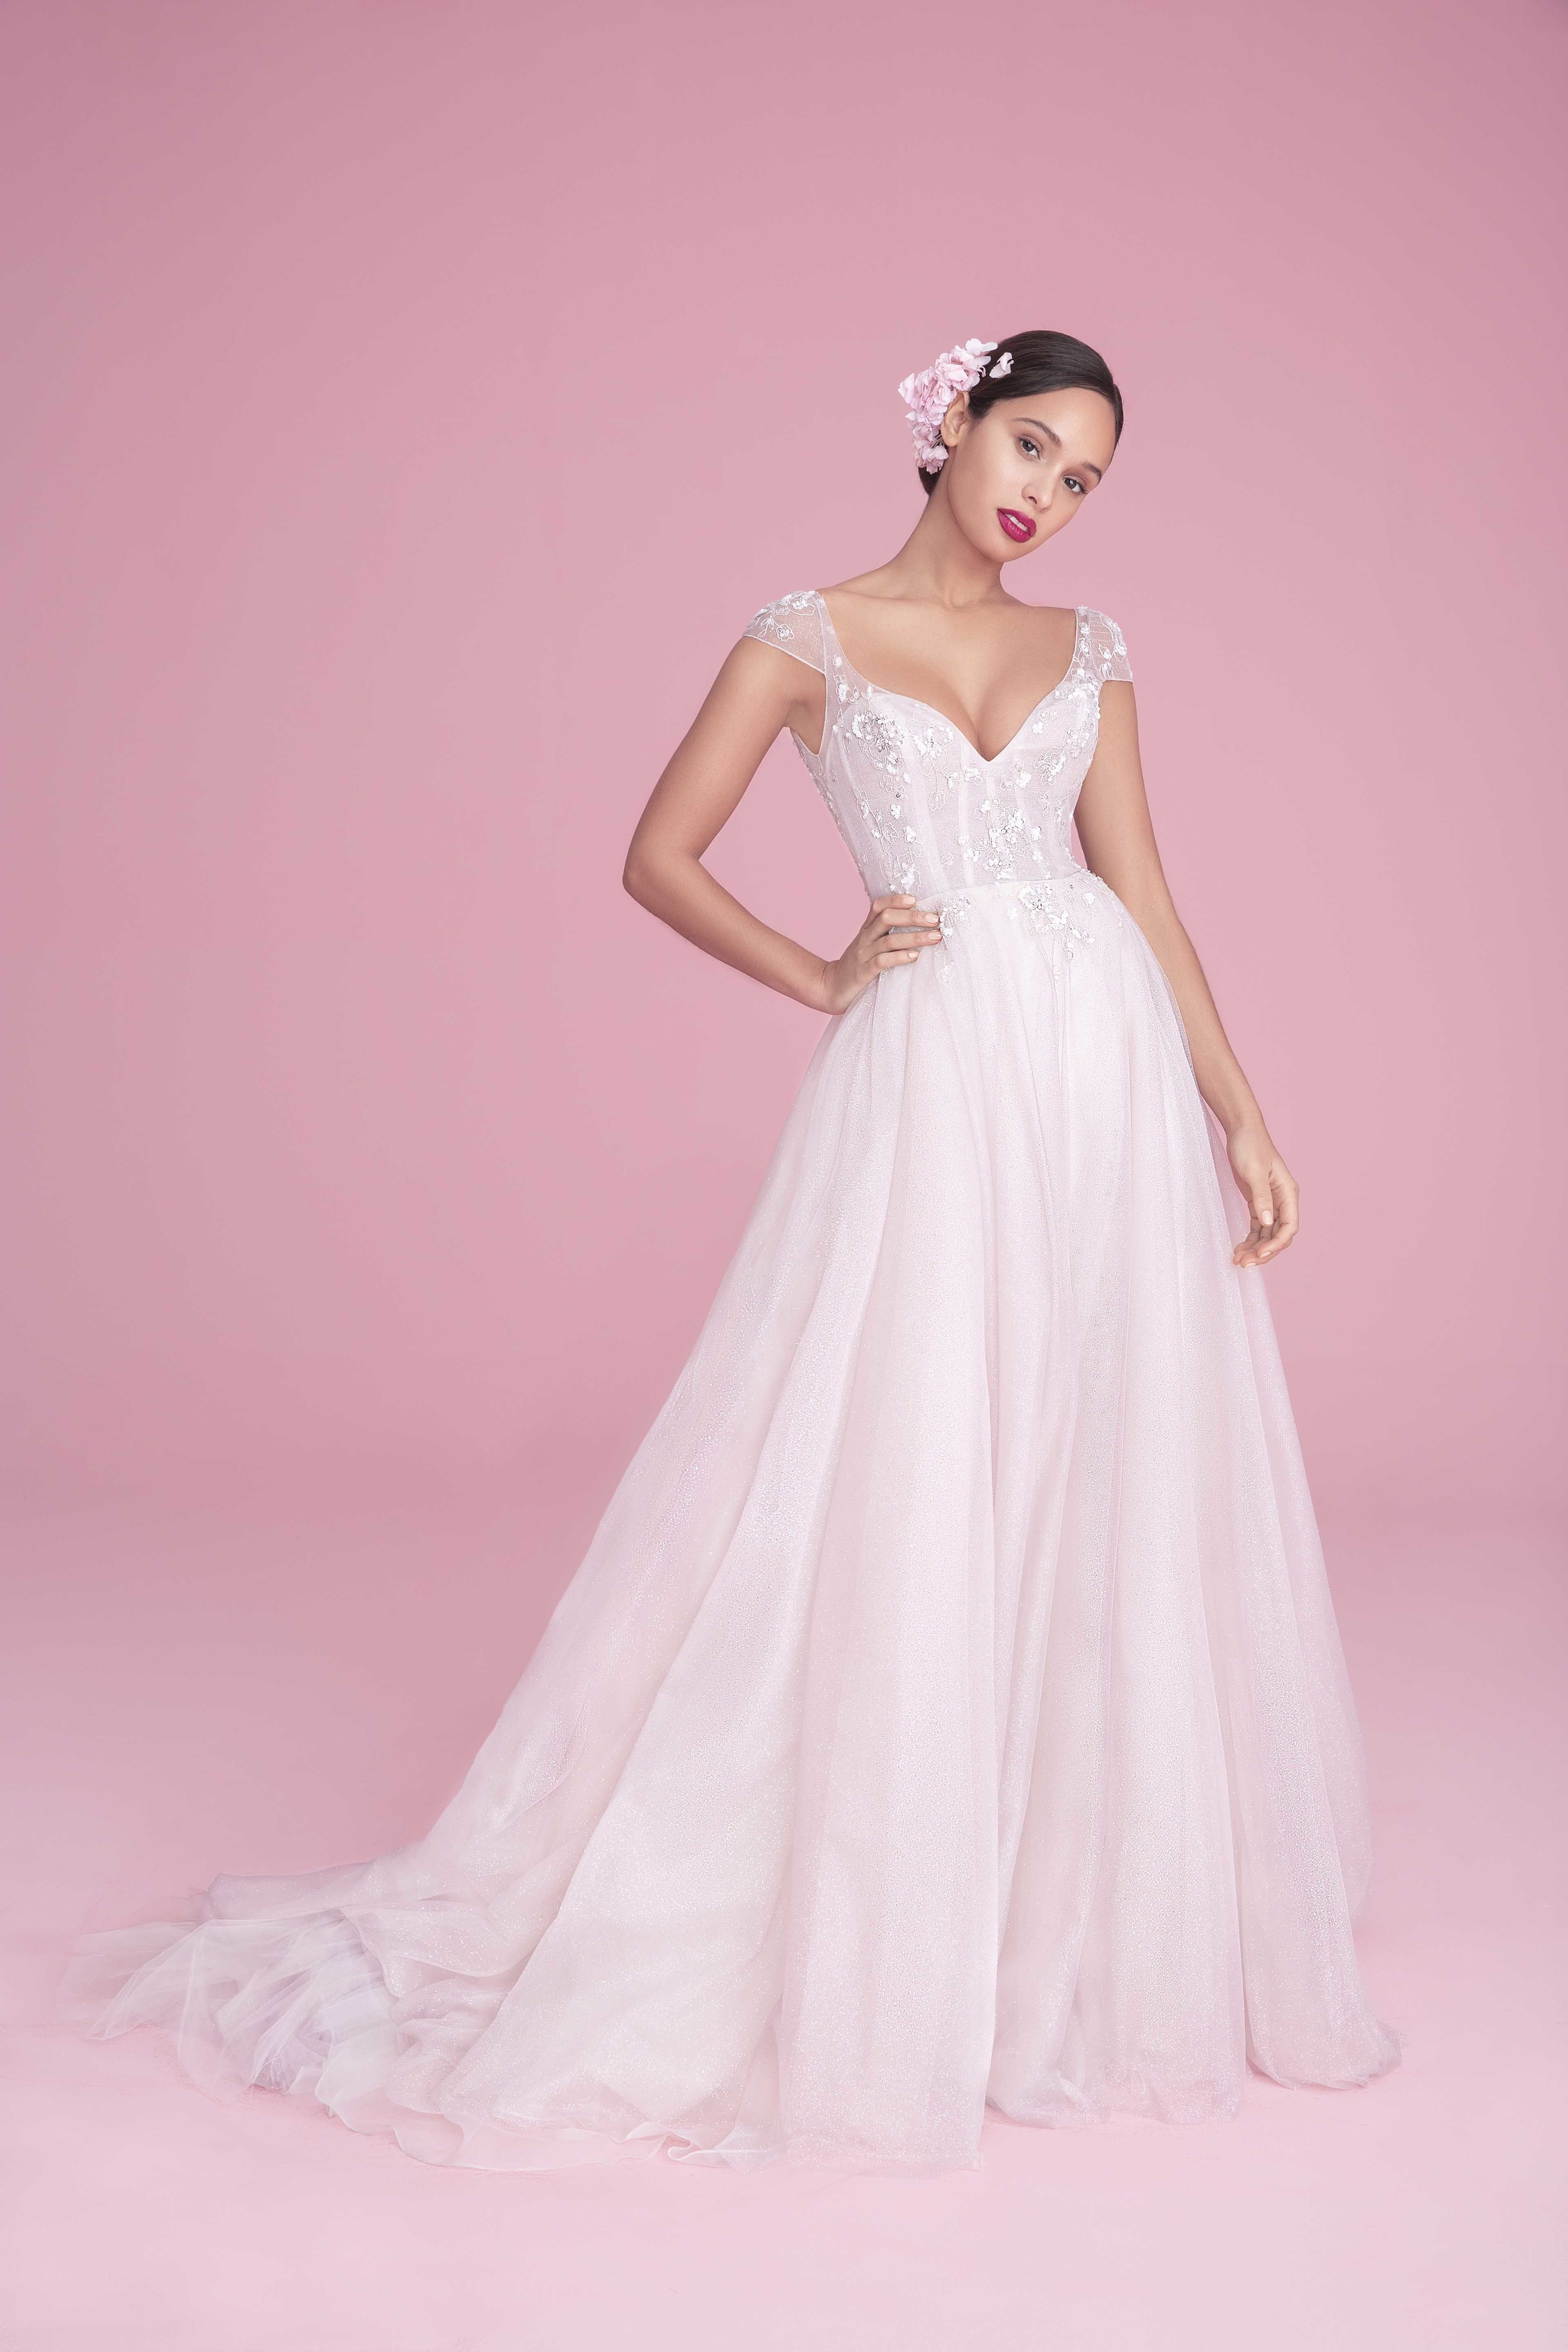 Blush by Hayley Paige Bridal & Wedding Dress Collection Spring 2019 ...